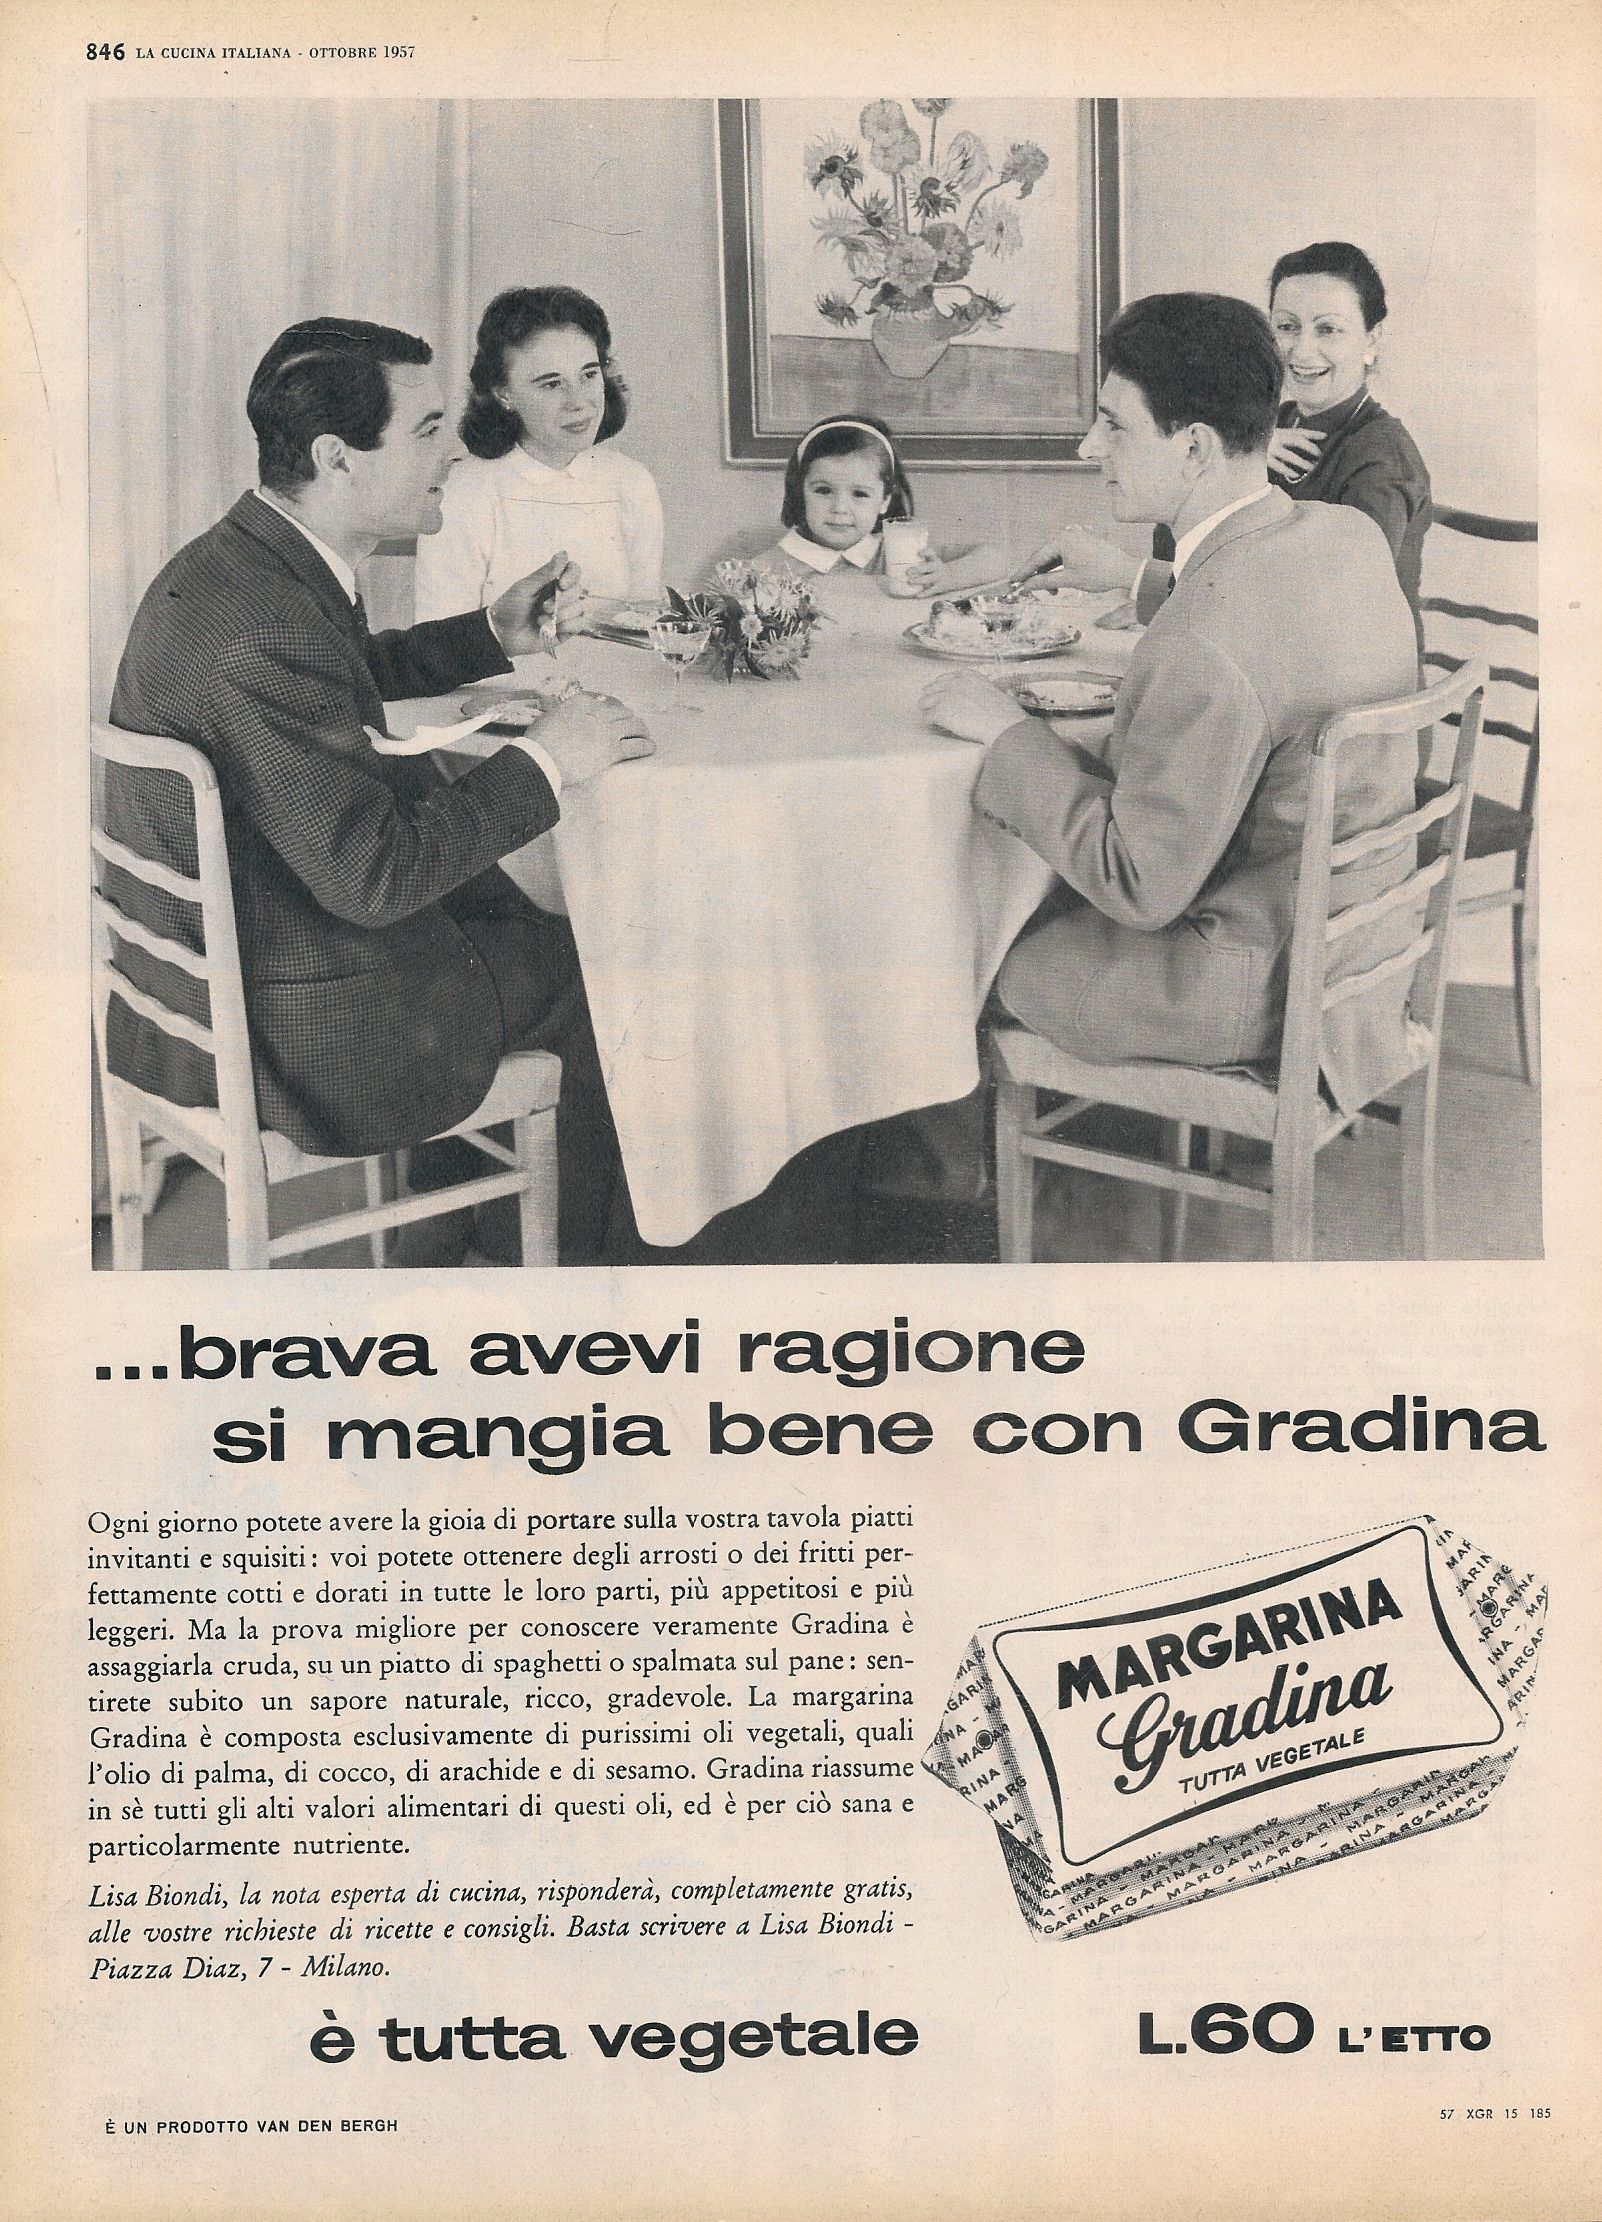 MARGARINA GRADINA. SI MANGIA BENE CON GRADINA - ADVERTISING